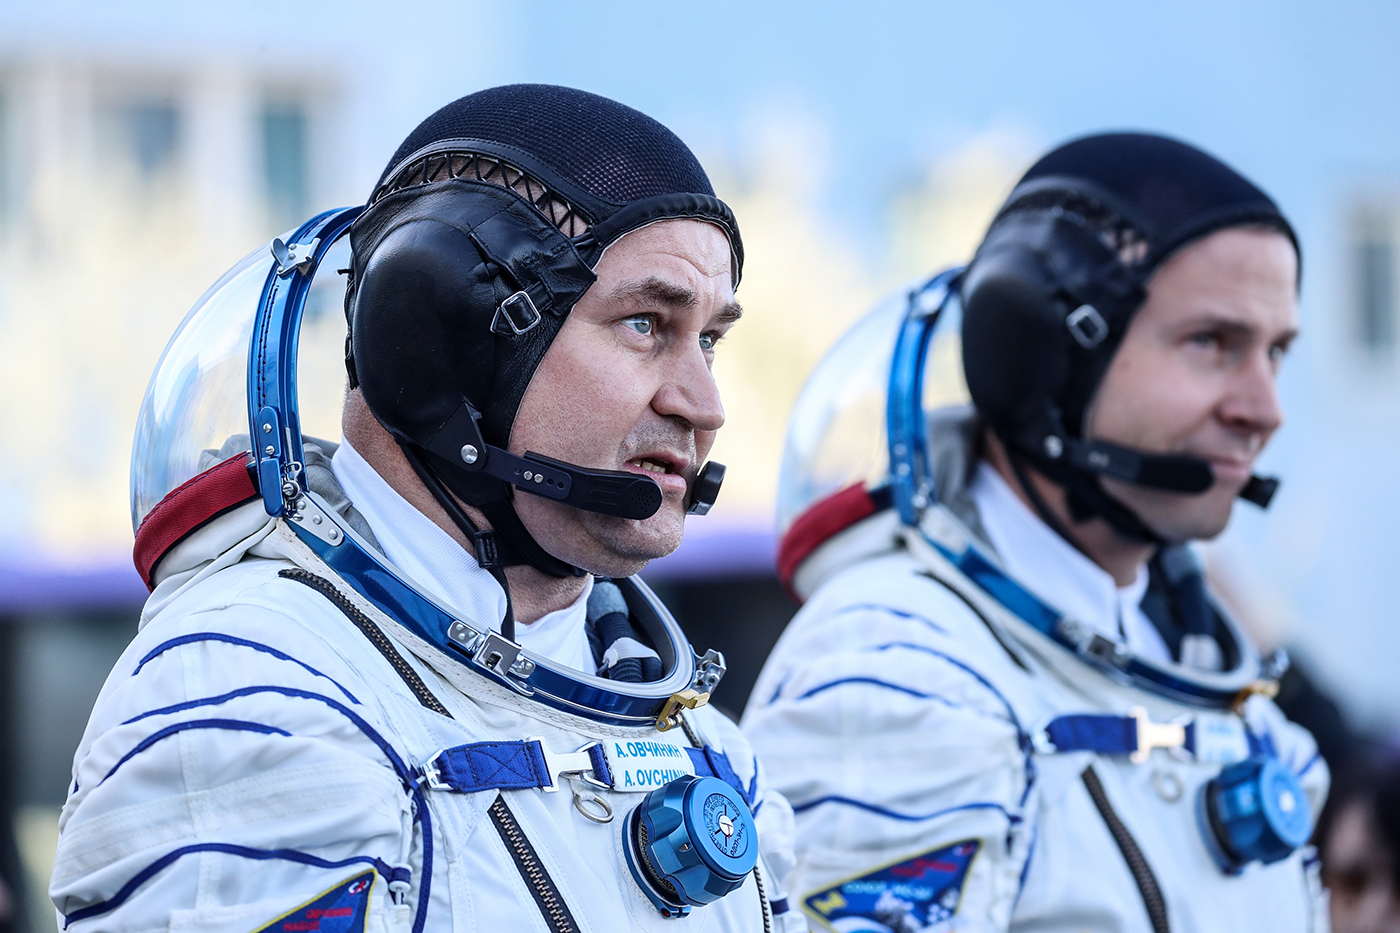 Cosmonaut Alexey Ovchinin and American astronaut Nick Hague on the way to their Soyuz rocket that will take them up to the ISS to join Expedition 57.